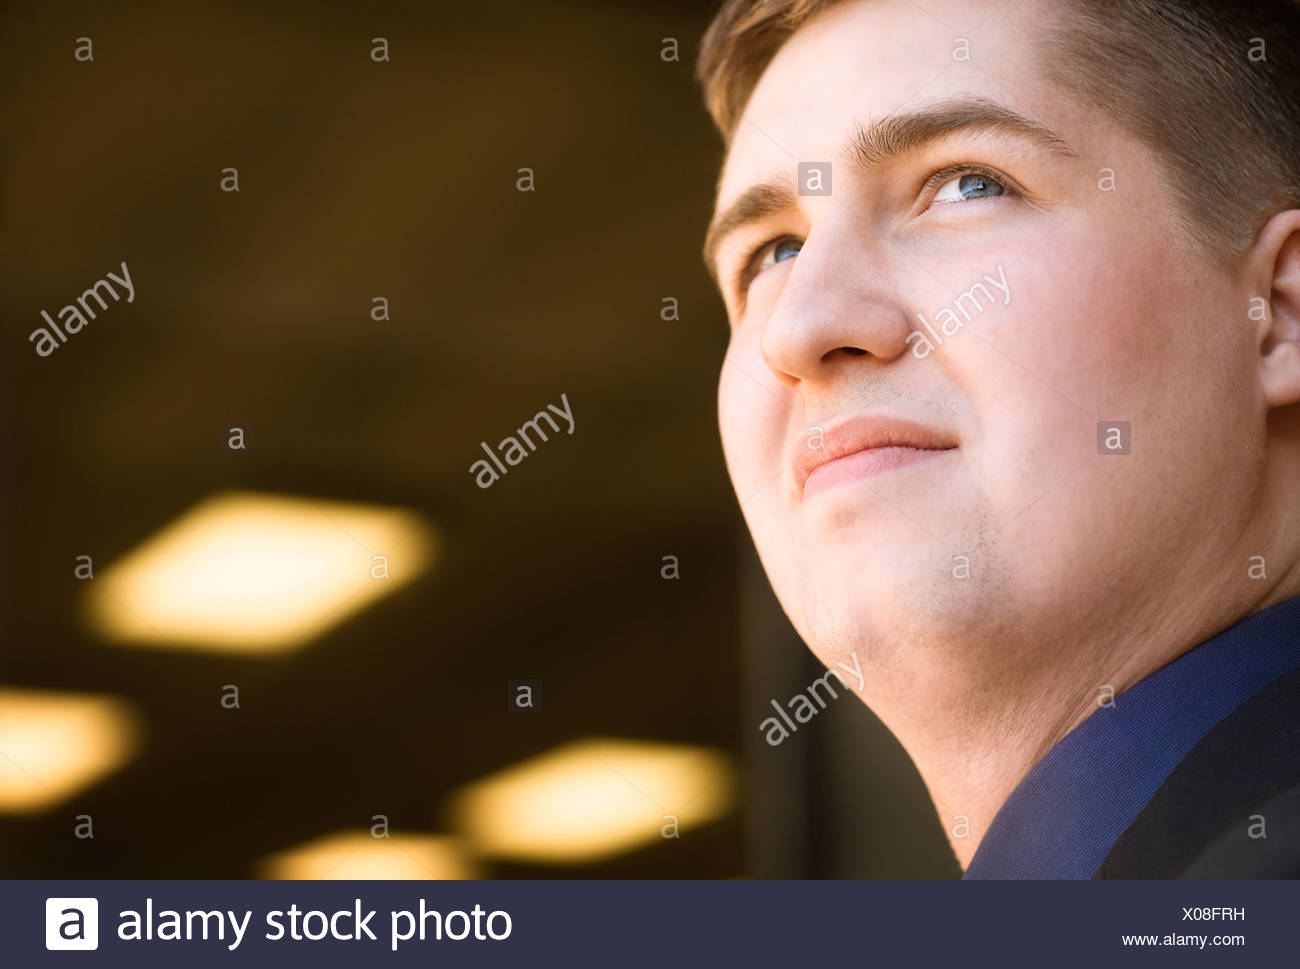 Portrait of a man - Stock Image